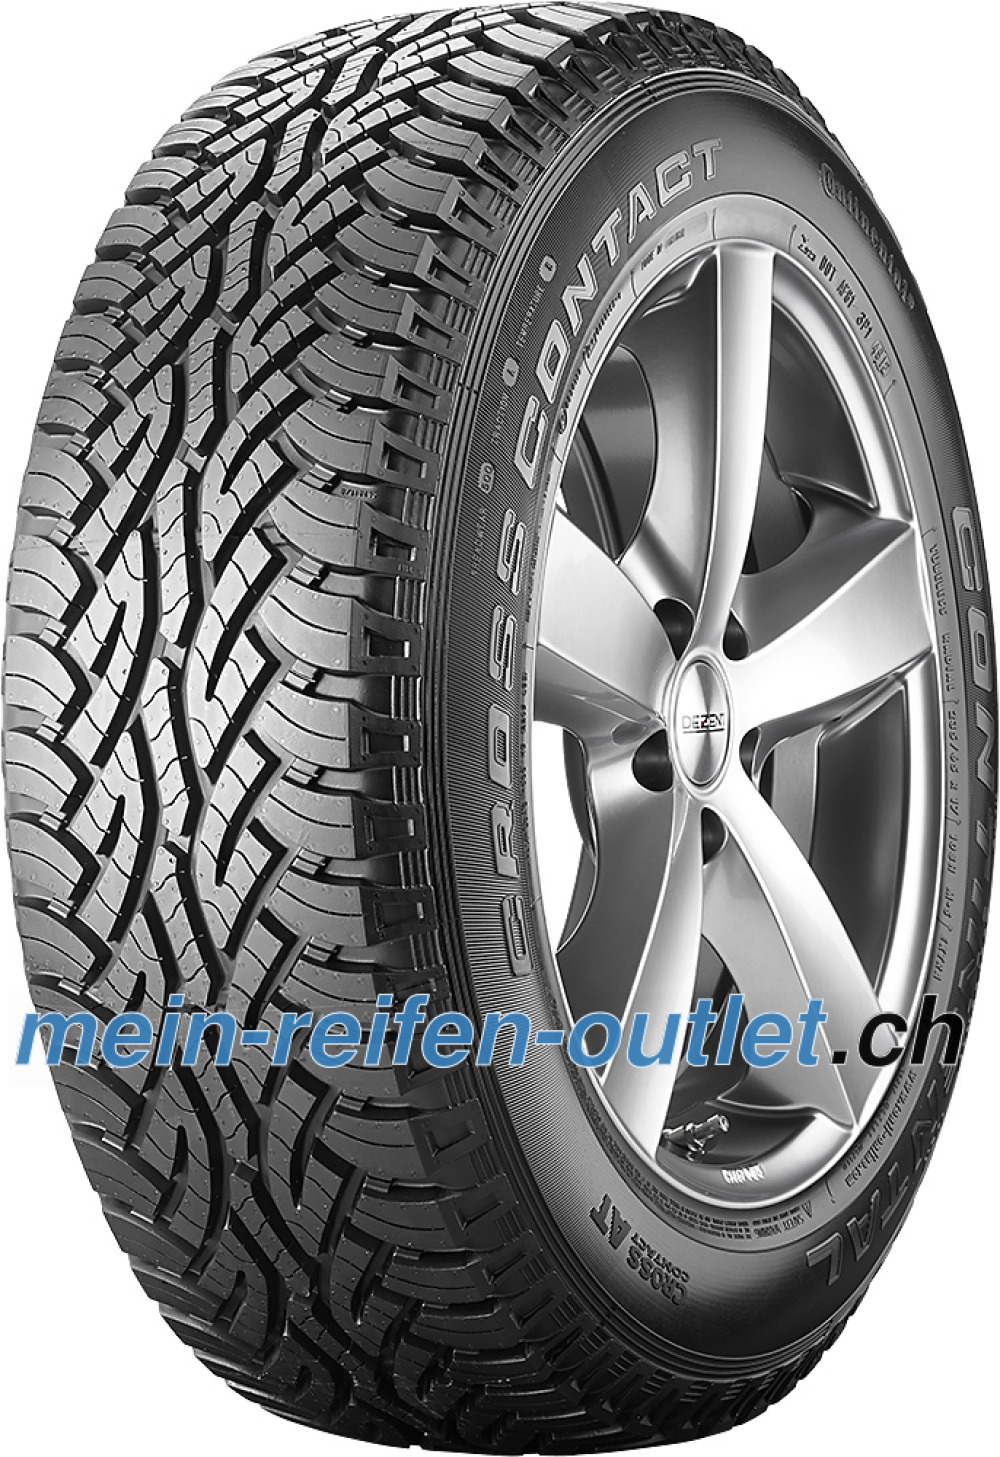 Continental ContiCrossContact AT ( 245/70 R16 111S XL mit Felgenrippe )